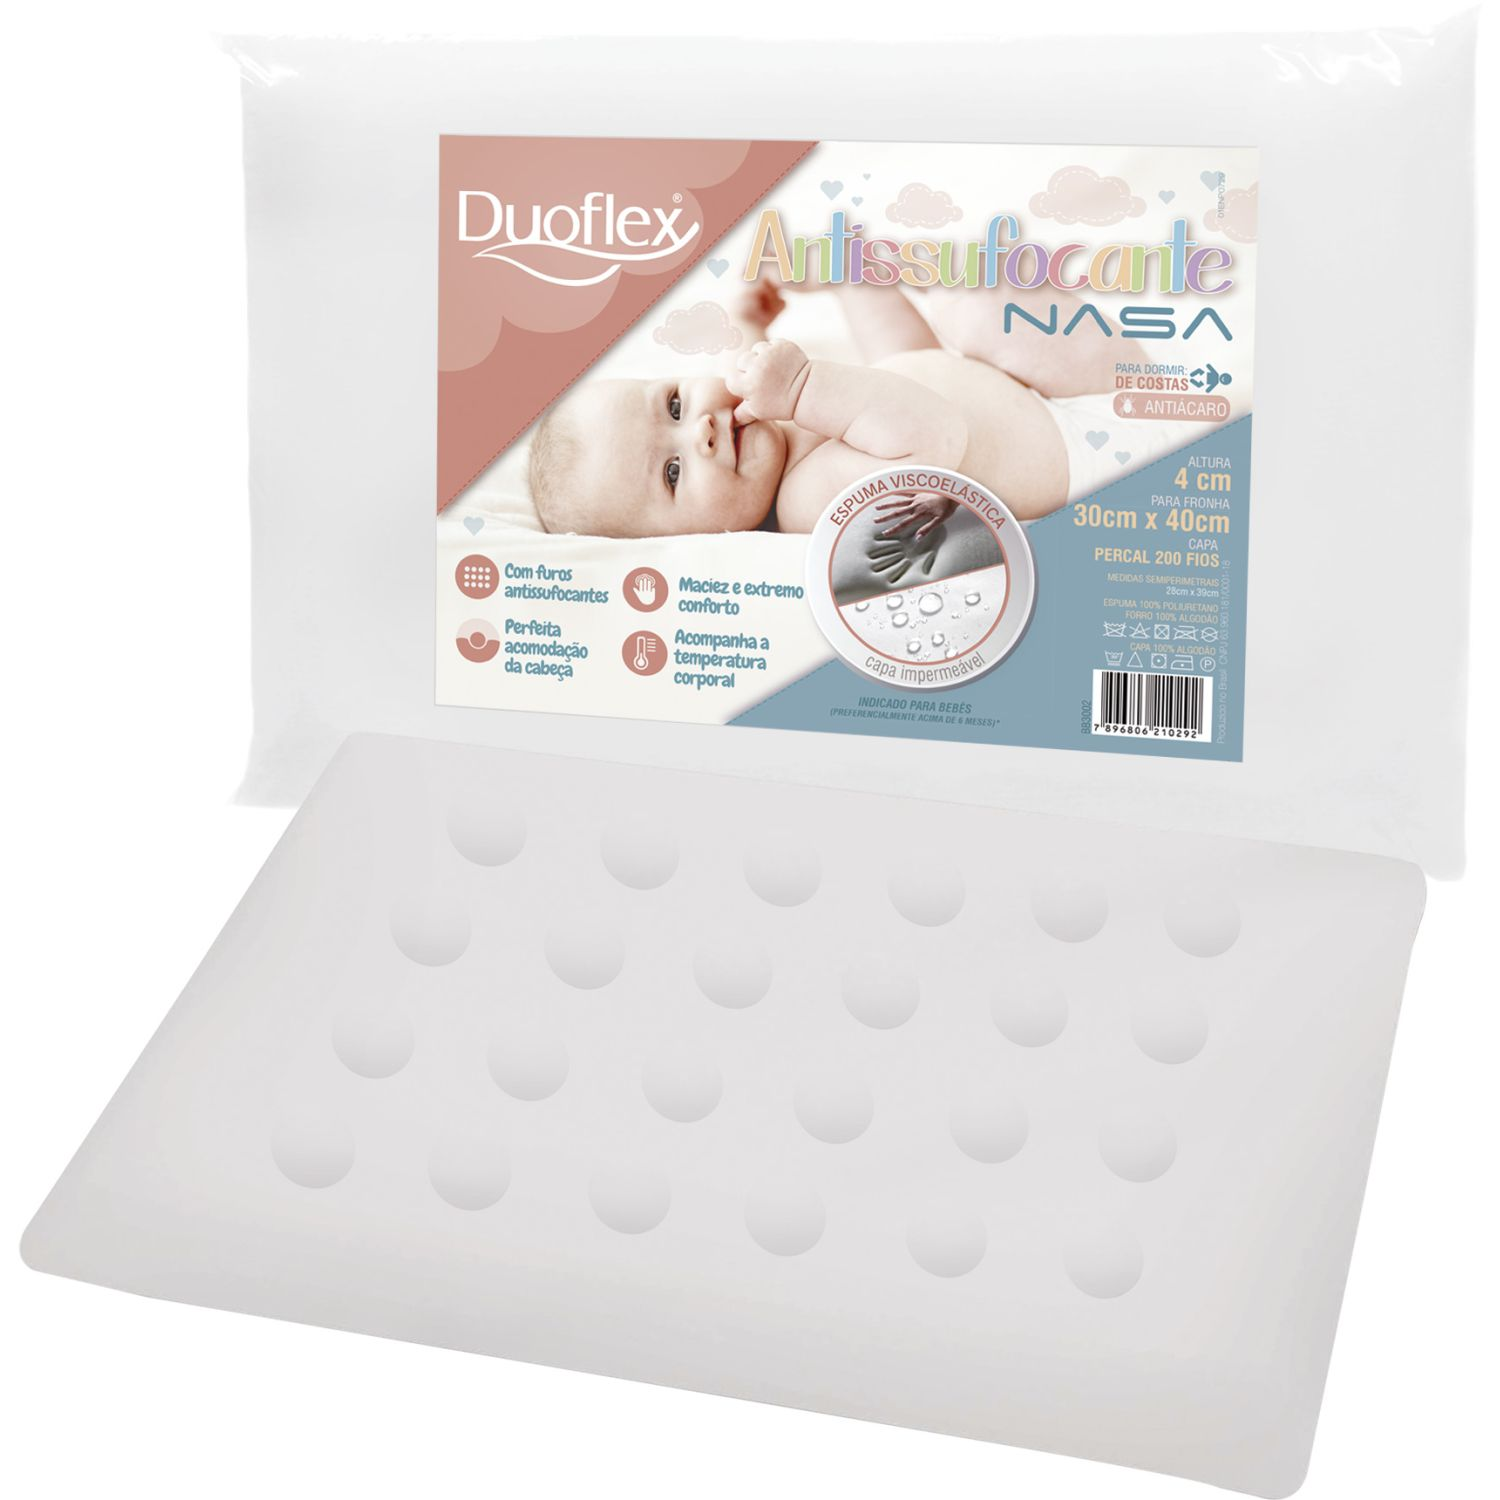 Duoflex Anti-Suffoctante Nasa Blanco Almohadas